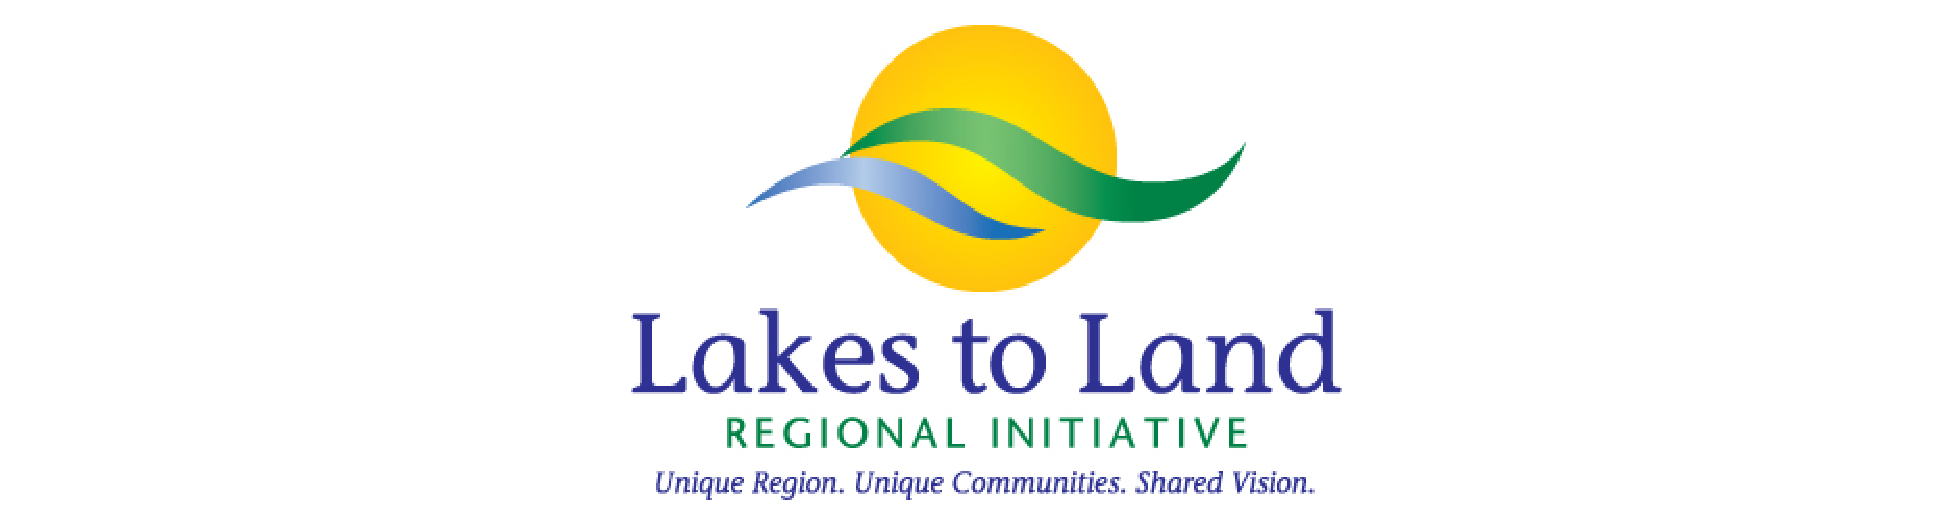 Lakes to Land Regional Initiative